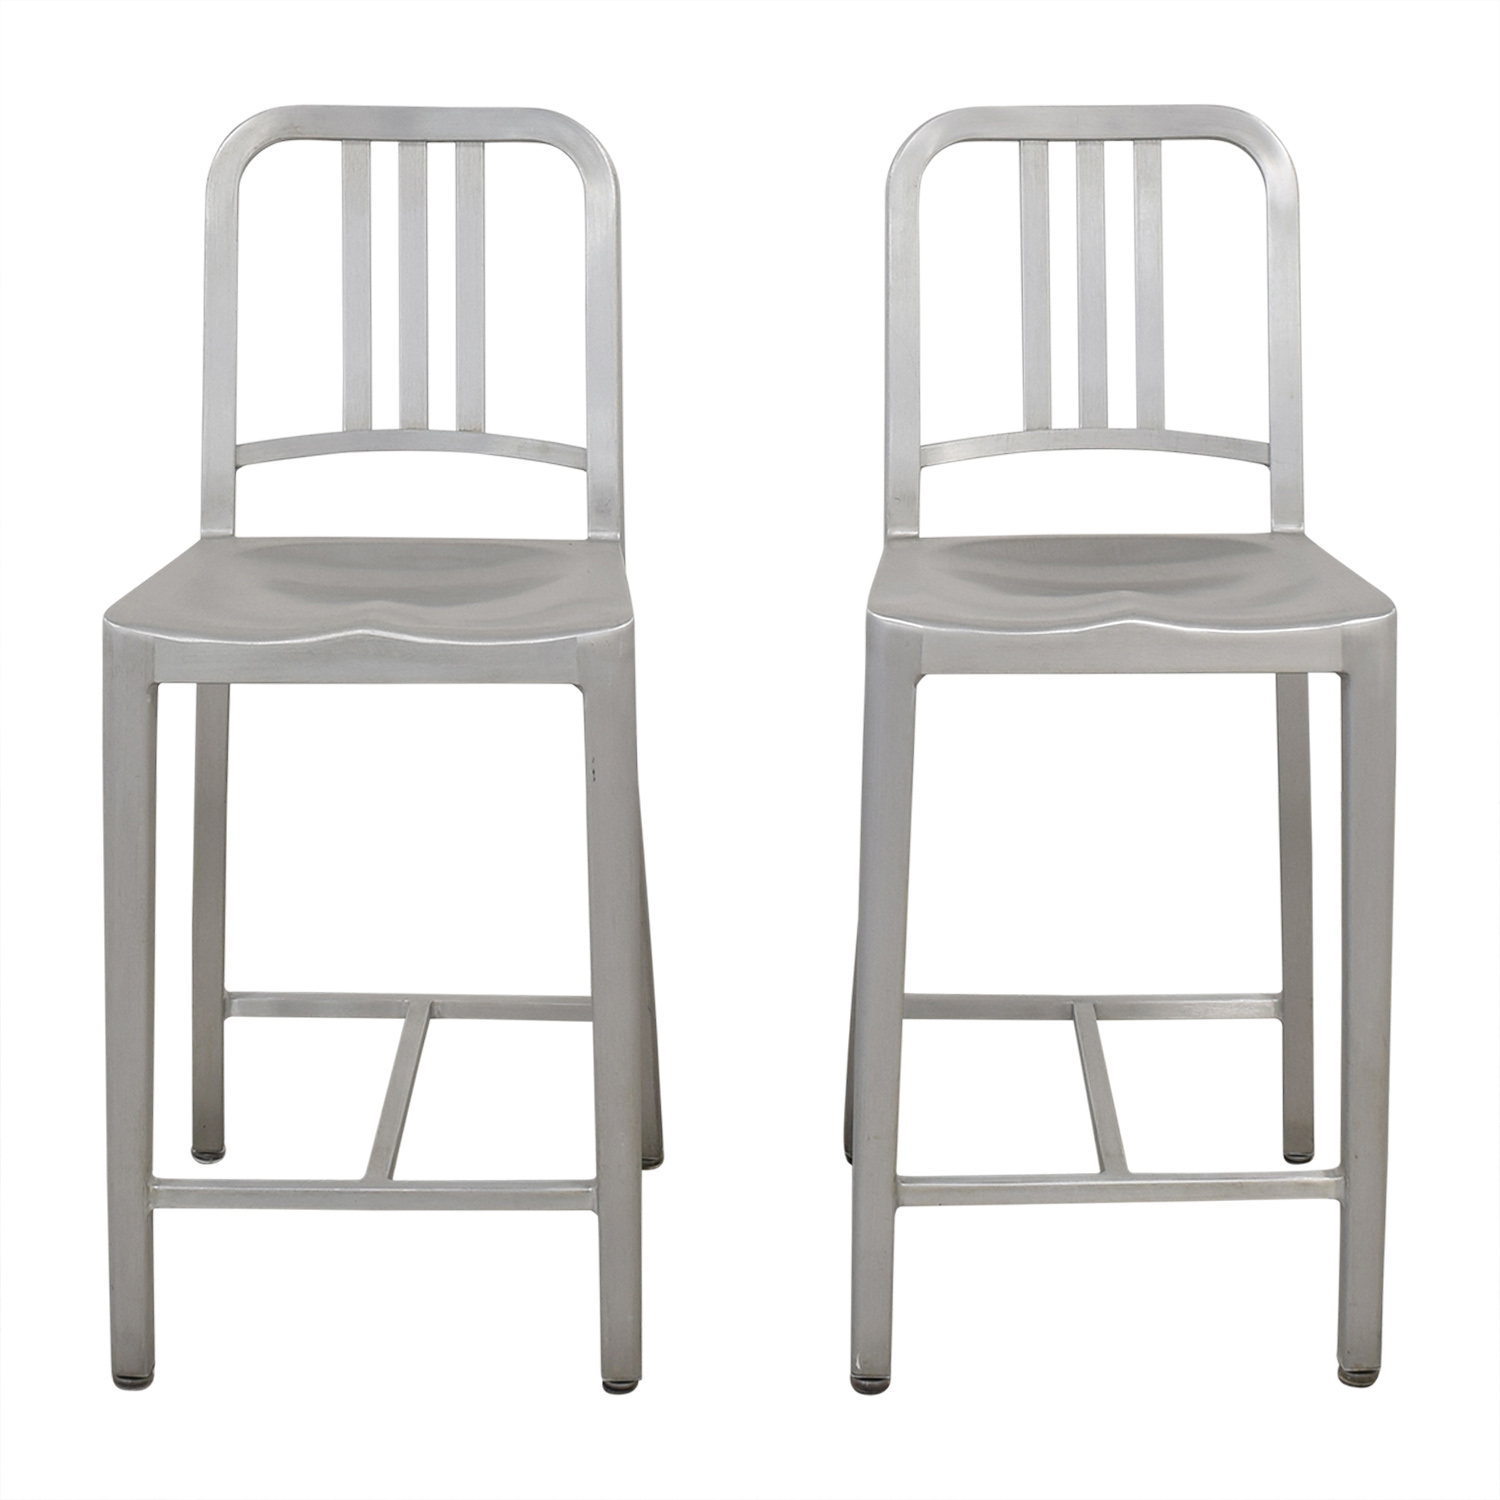 Amazing 10 Off Cb2 Cb2 Curator White Hide Stool Chairs Machost Co Dining Chair Design Ideas Machostcouk